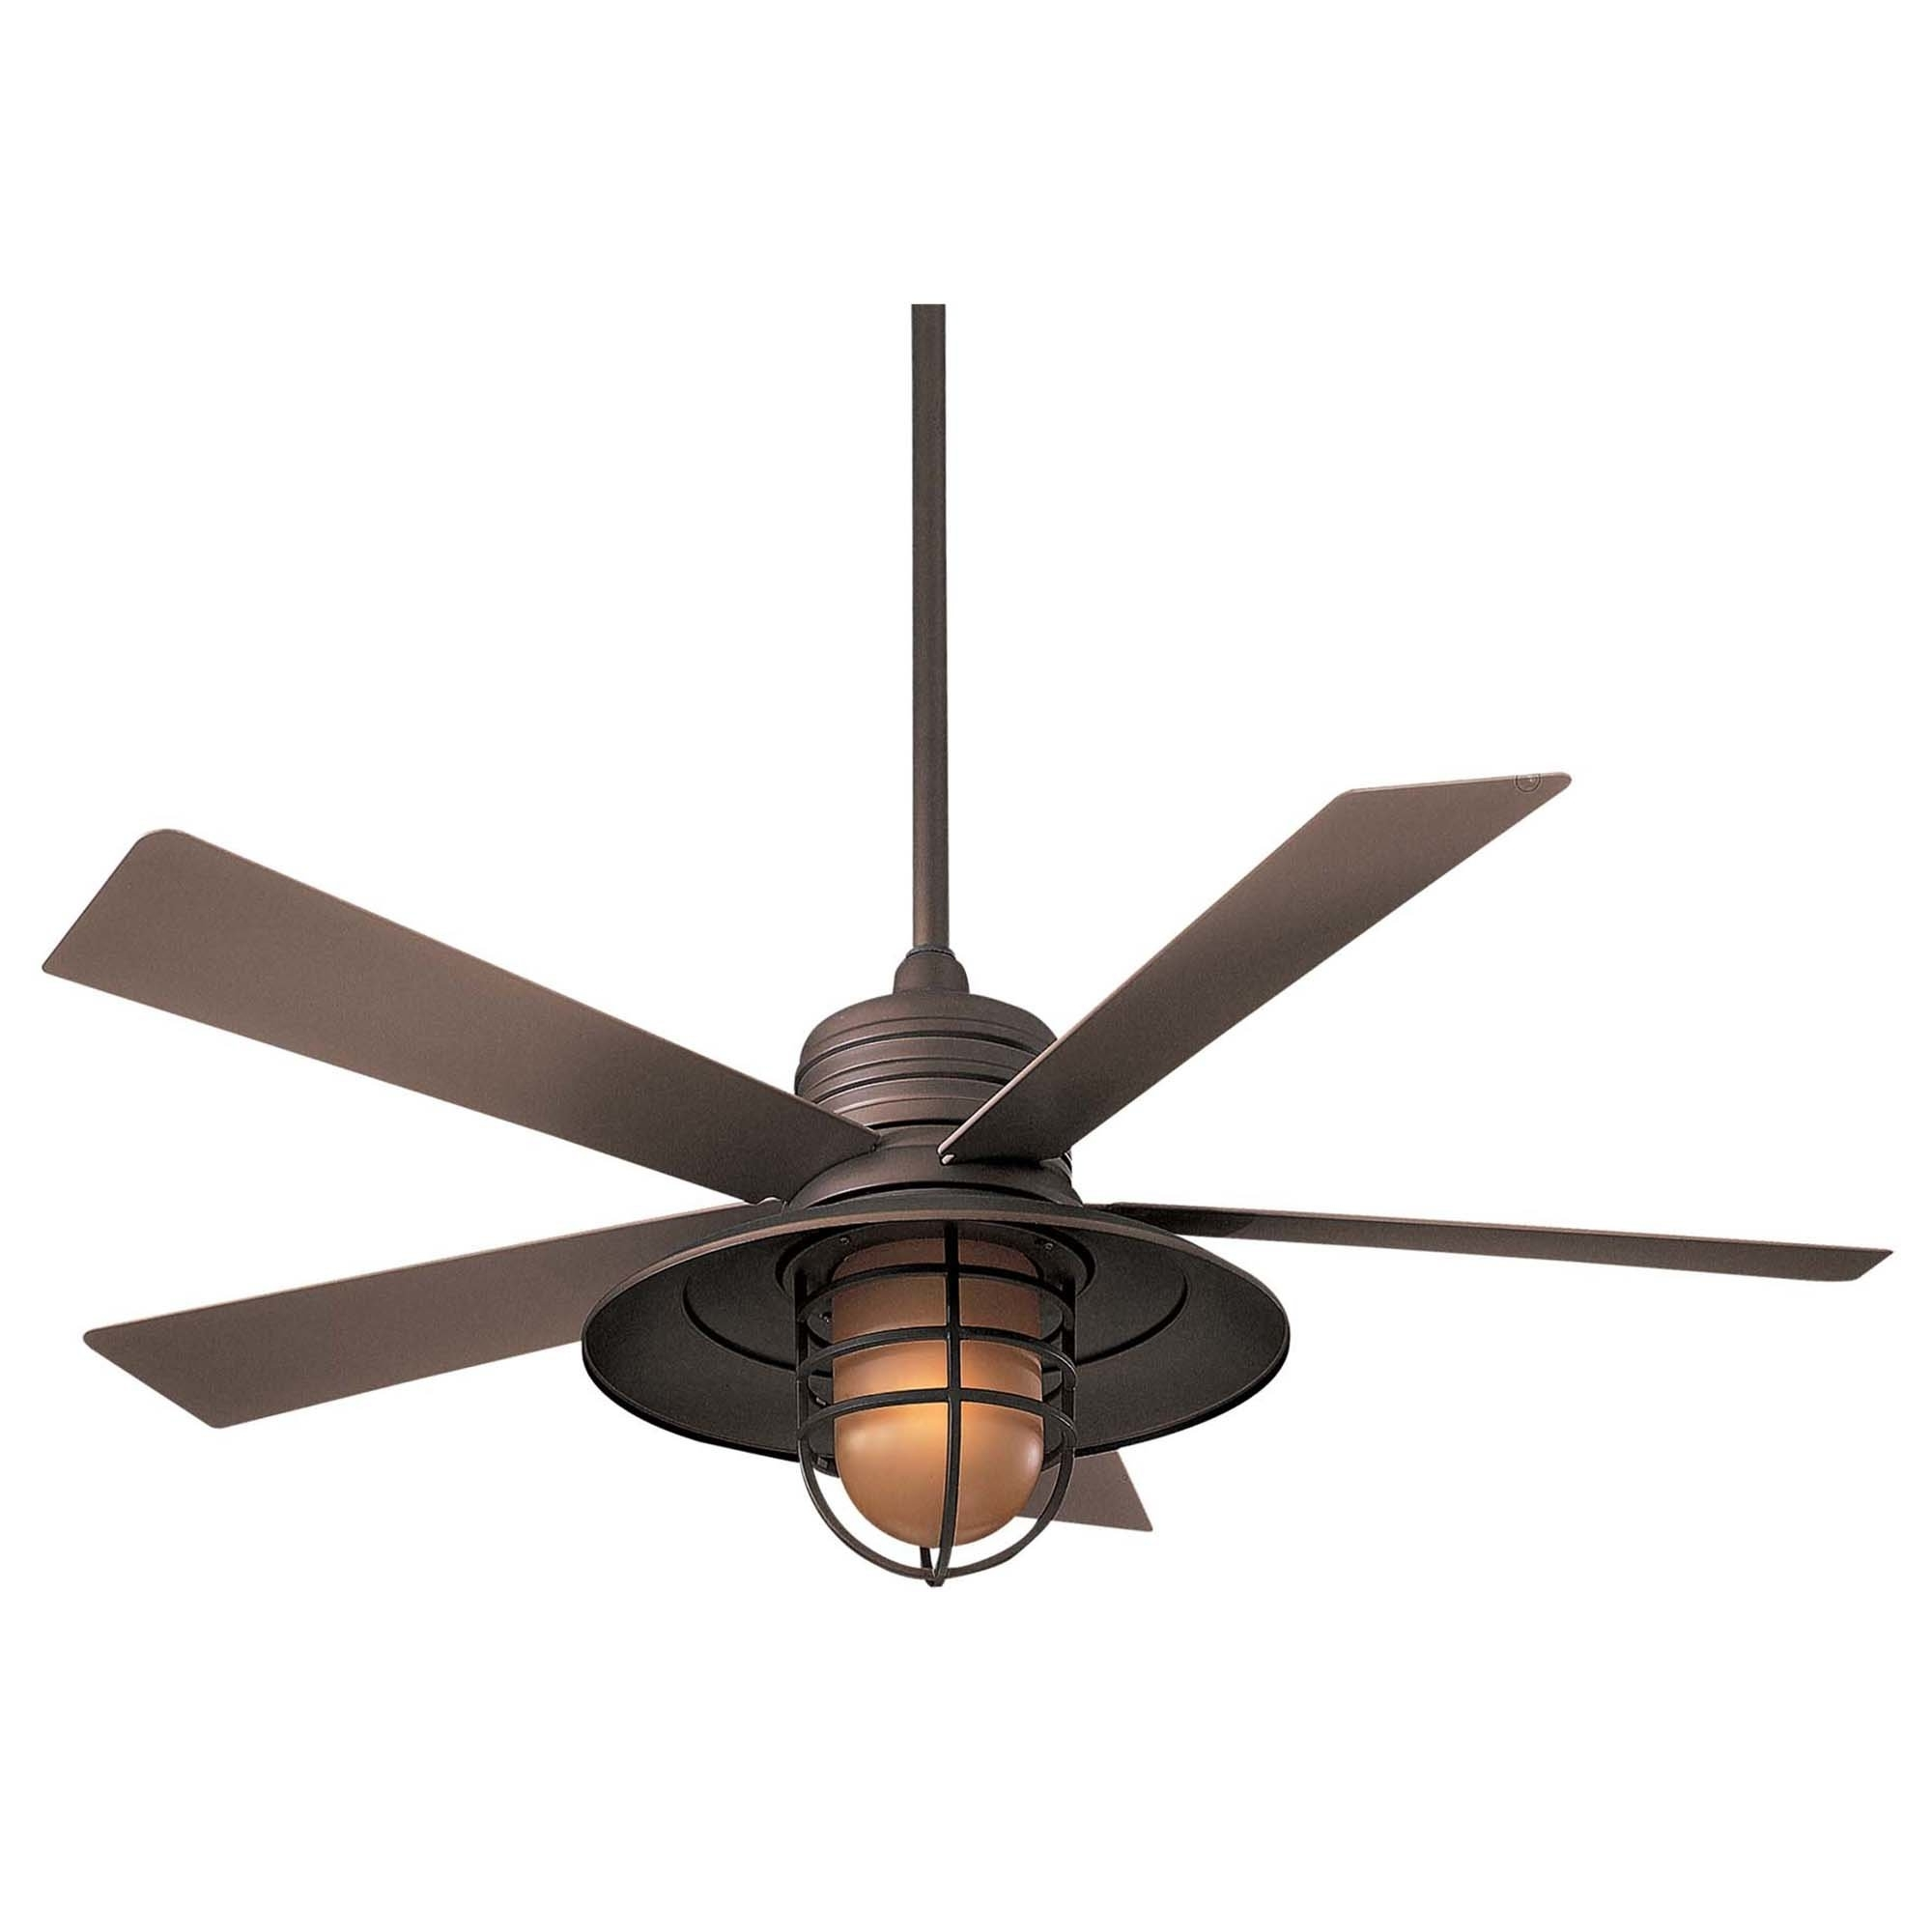 "Minka Aire 54"" Rainman 5 Blade Outdoor Led Ceiling Fan & Reviews Pertaining To Most Recently Released Wayfair Outdoor Ceiling Fans With Lights (View 9 of 20)"